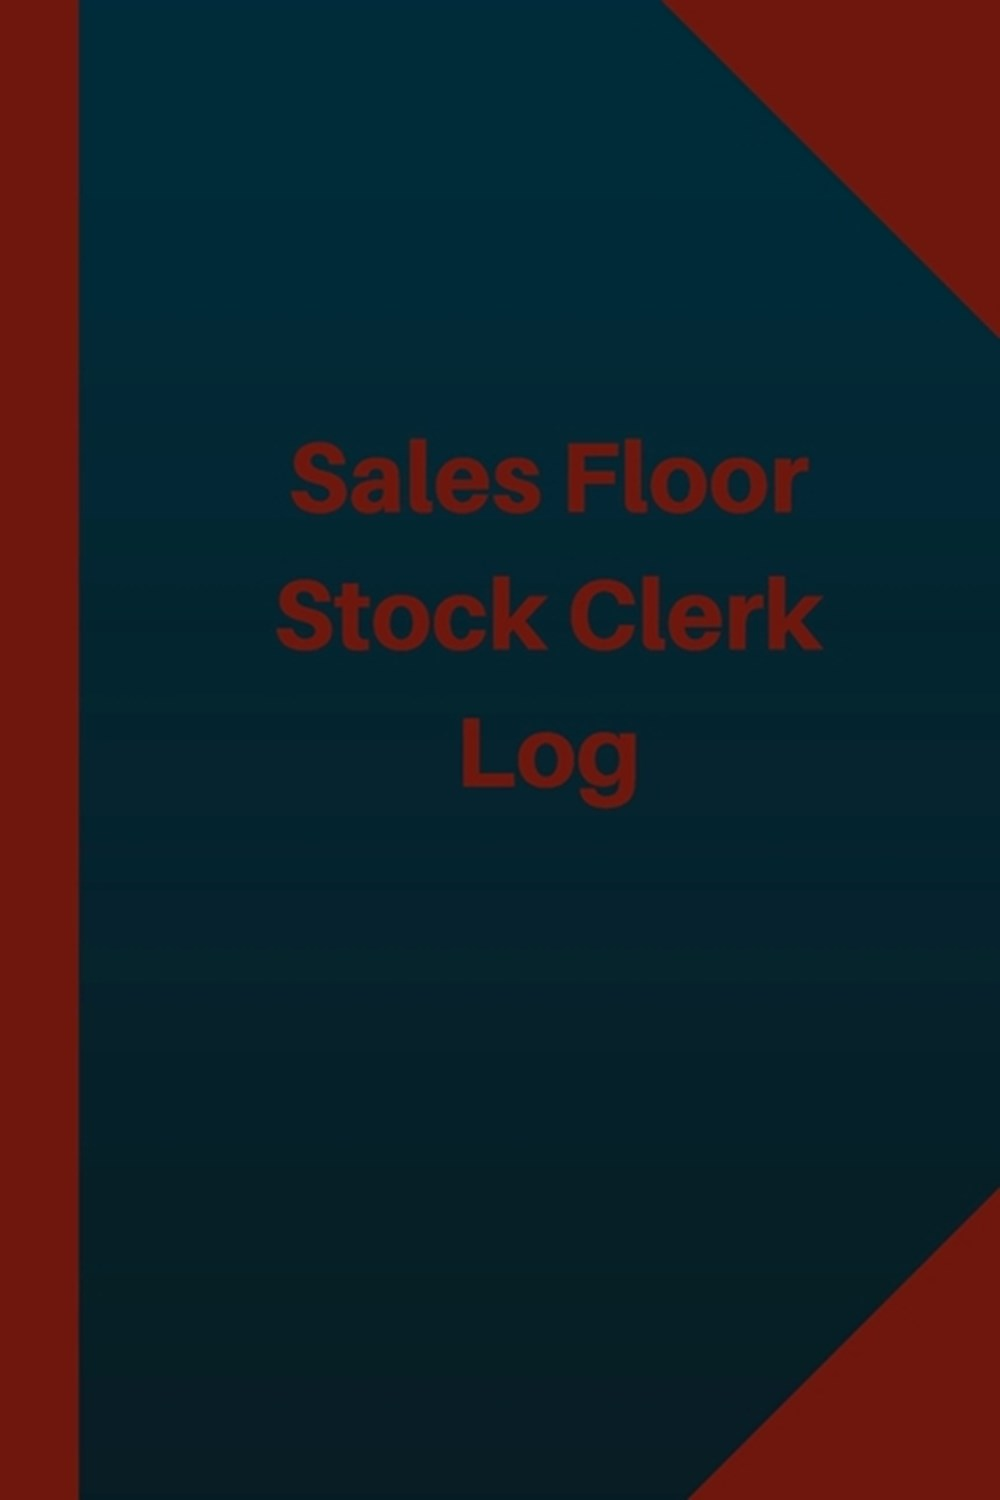 Sales Floor Stock Clerk Log (Logbook, Journal - 124 pages 6x9 inches) Sales Floor Stock Clerk Logboo